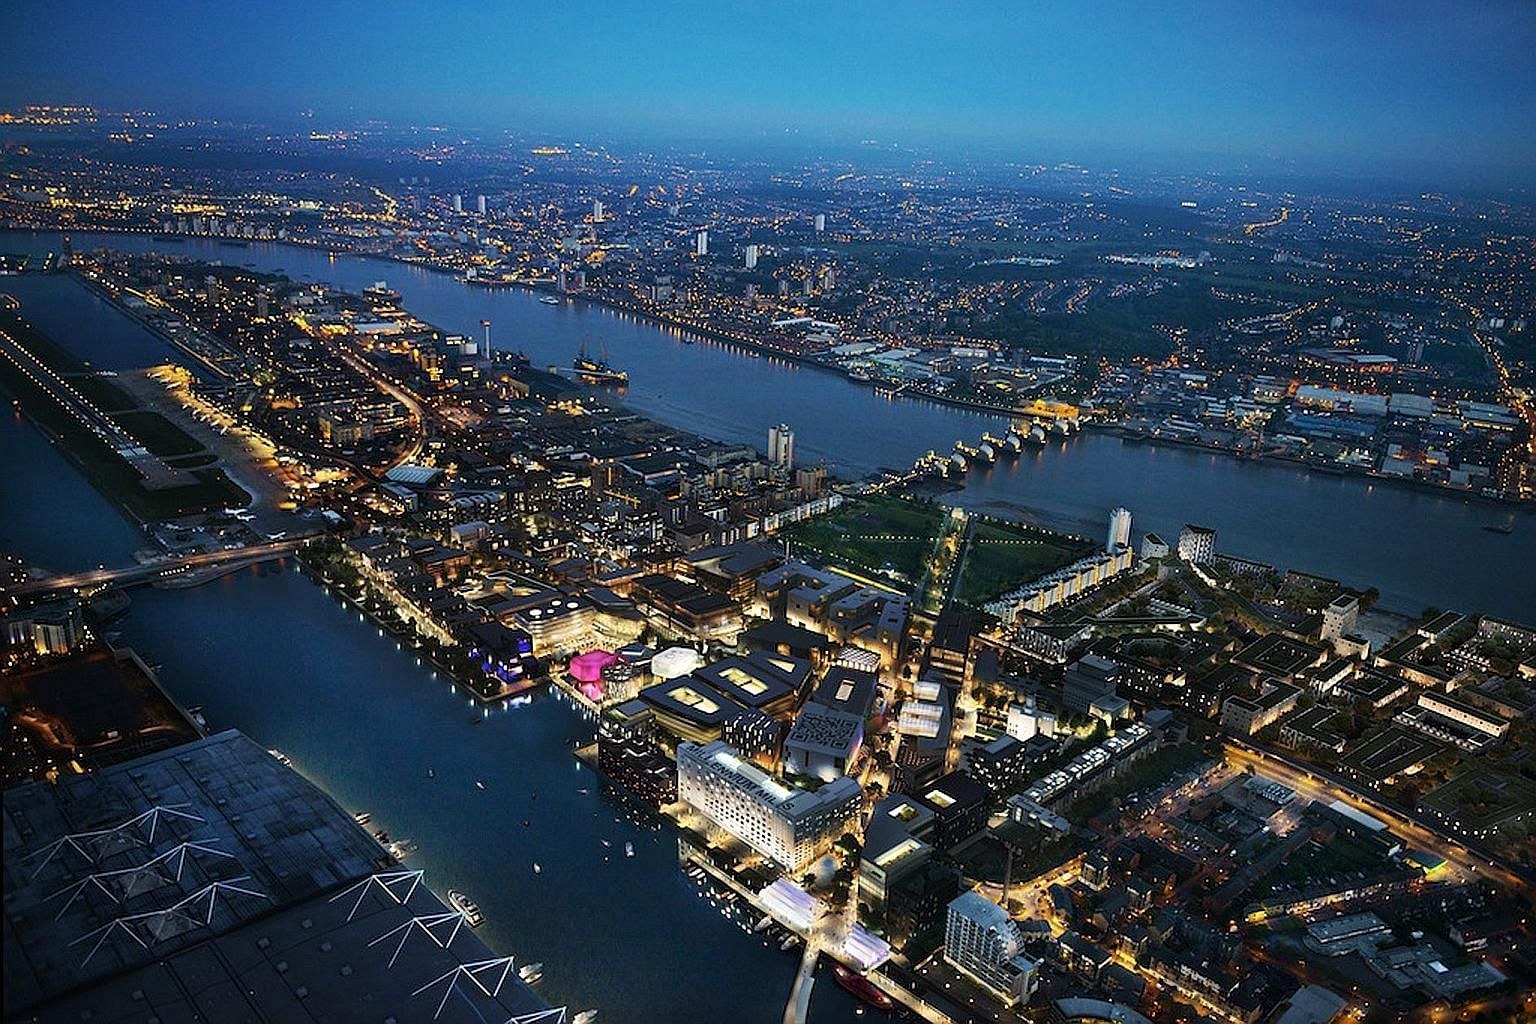 An artist's impression of the Silvertown development in London's Royal Docks area. The 25ha site, with its first phase expected to be completed by 2018, will be a mixed-use project that includes offices, leisure and retail facilities and about 3,000